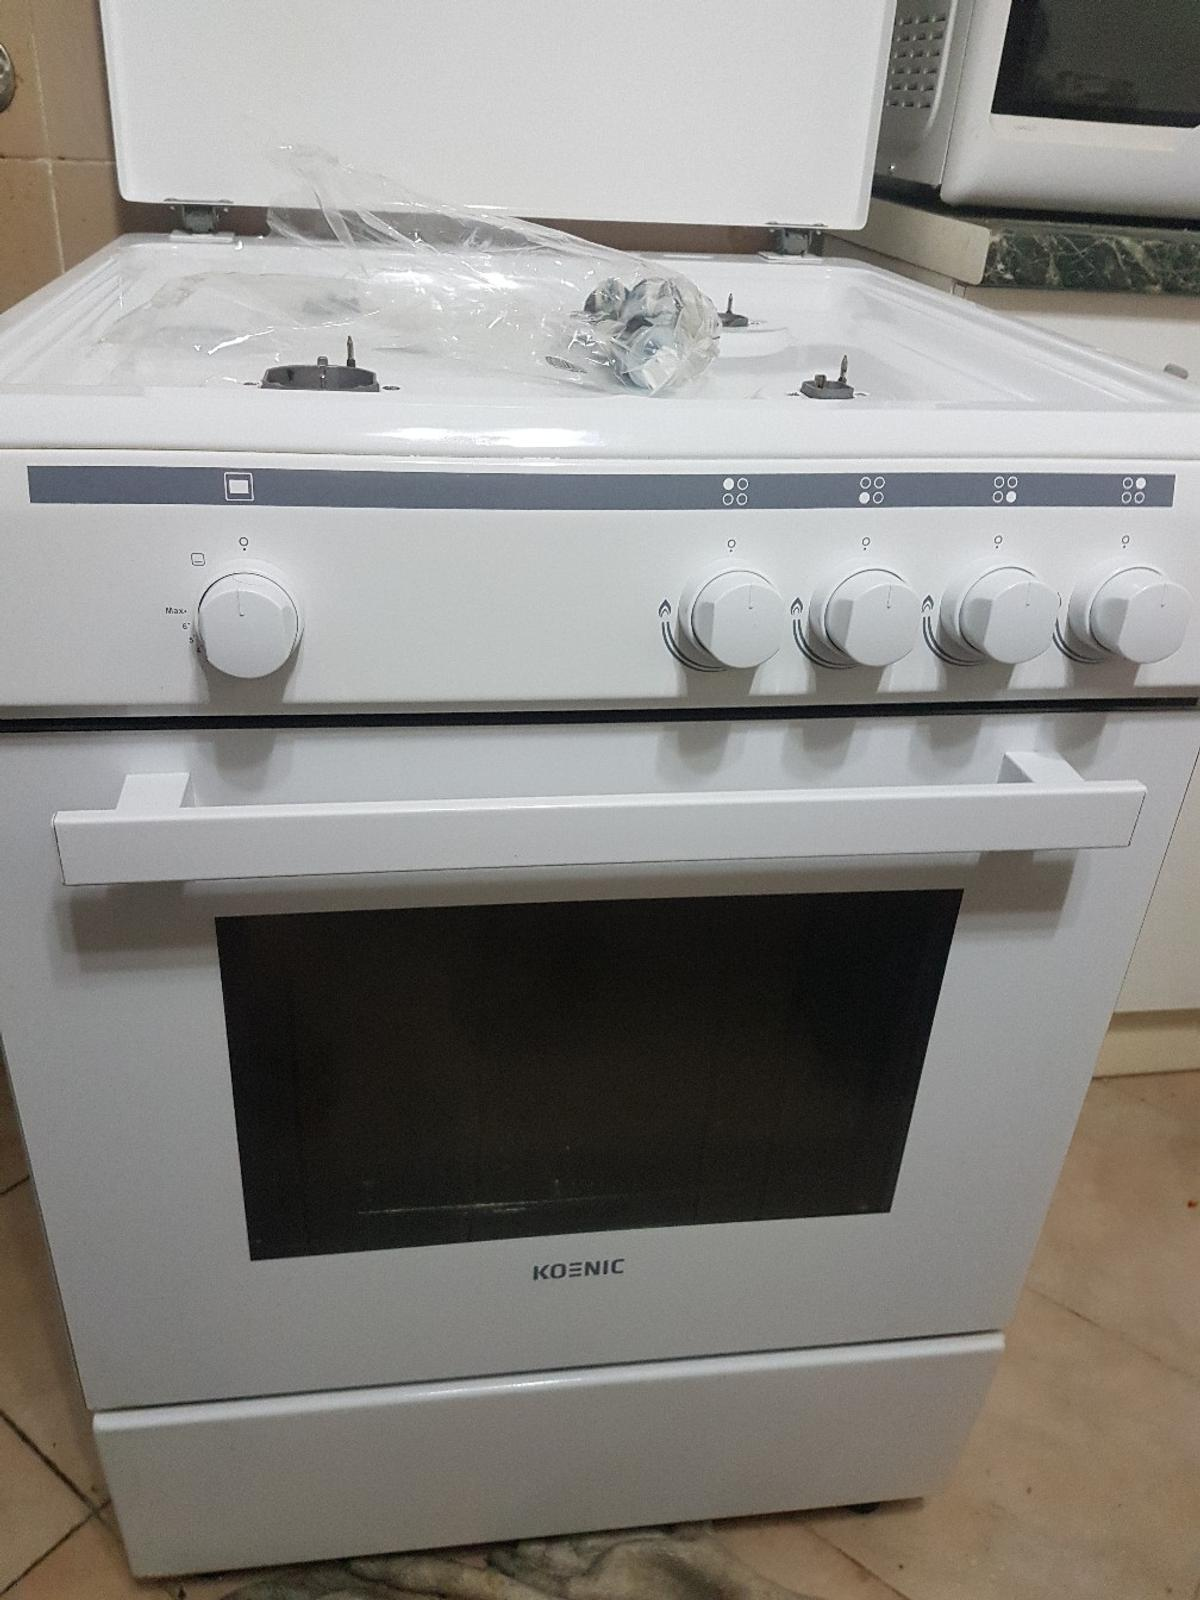 Cucine A Gas Usate Genova.Cucina A Gas Koenic In 16139 Genova For 1 00 For Sale Shpock